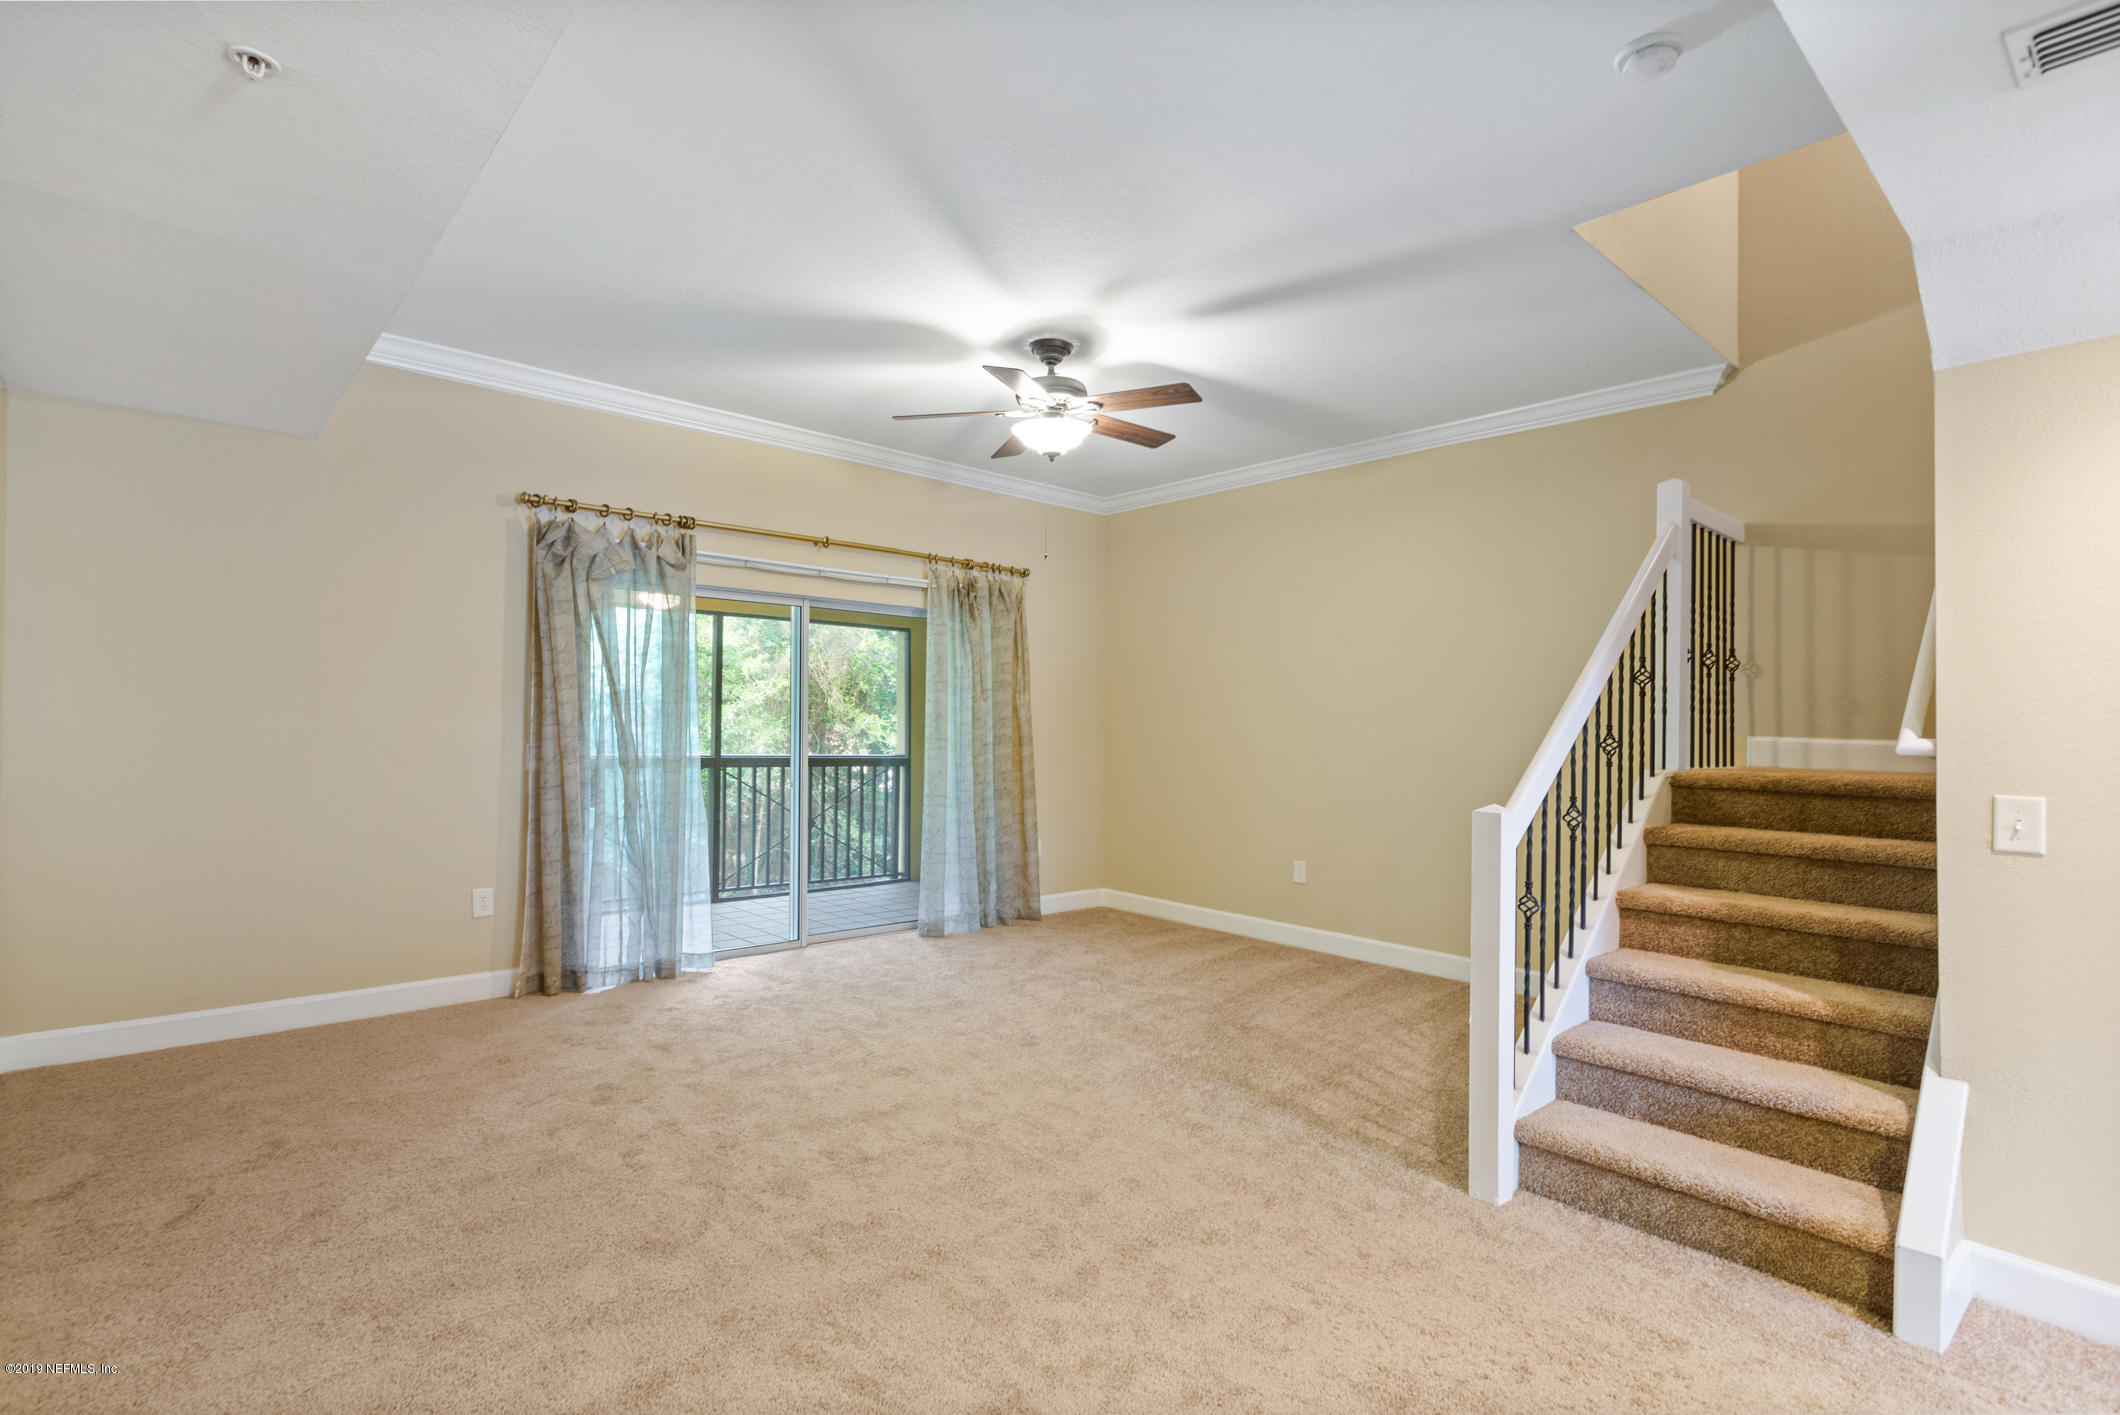 9745 TOUCHTON, JACKSONVILLE, FLORIDA 32246, 2 Bedrooms Bedrooms, ,2 BathroomsBathrooms,Condo,For sale,TOUCHTON,1014974